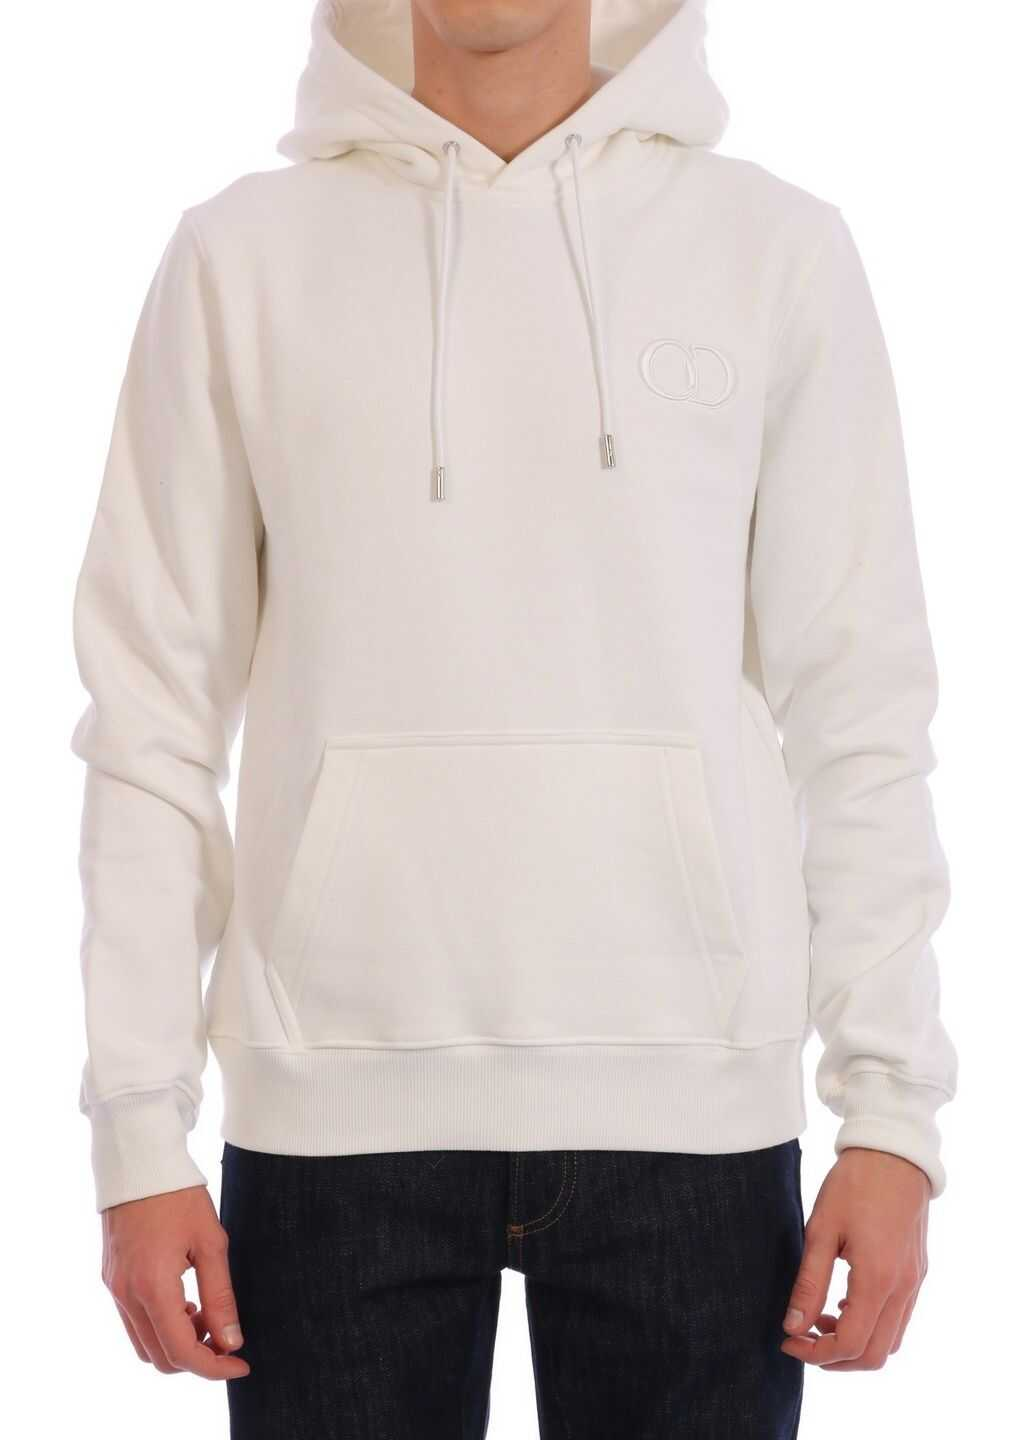 Dior Sweatshirt Cd Icon White